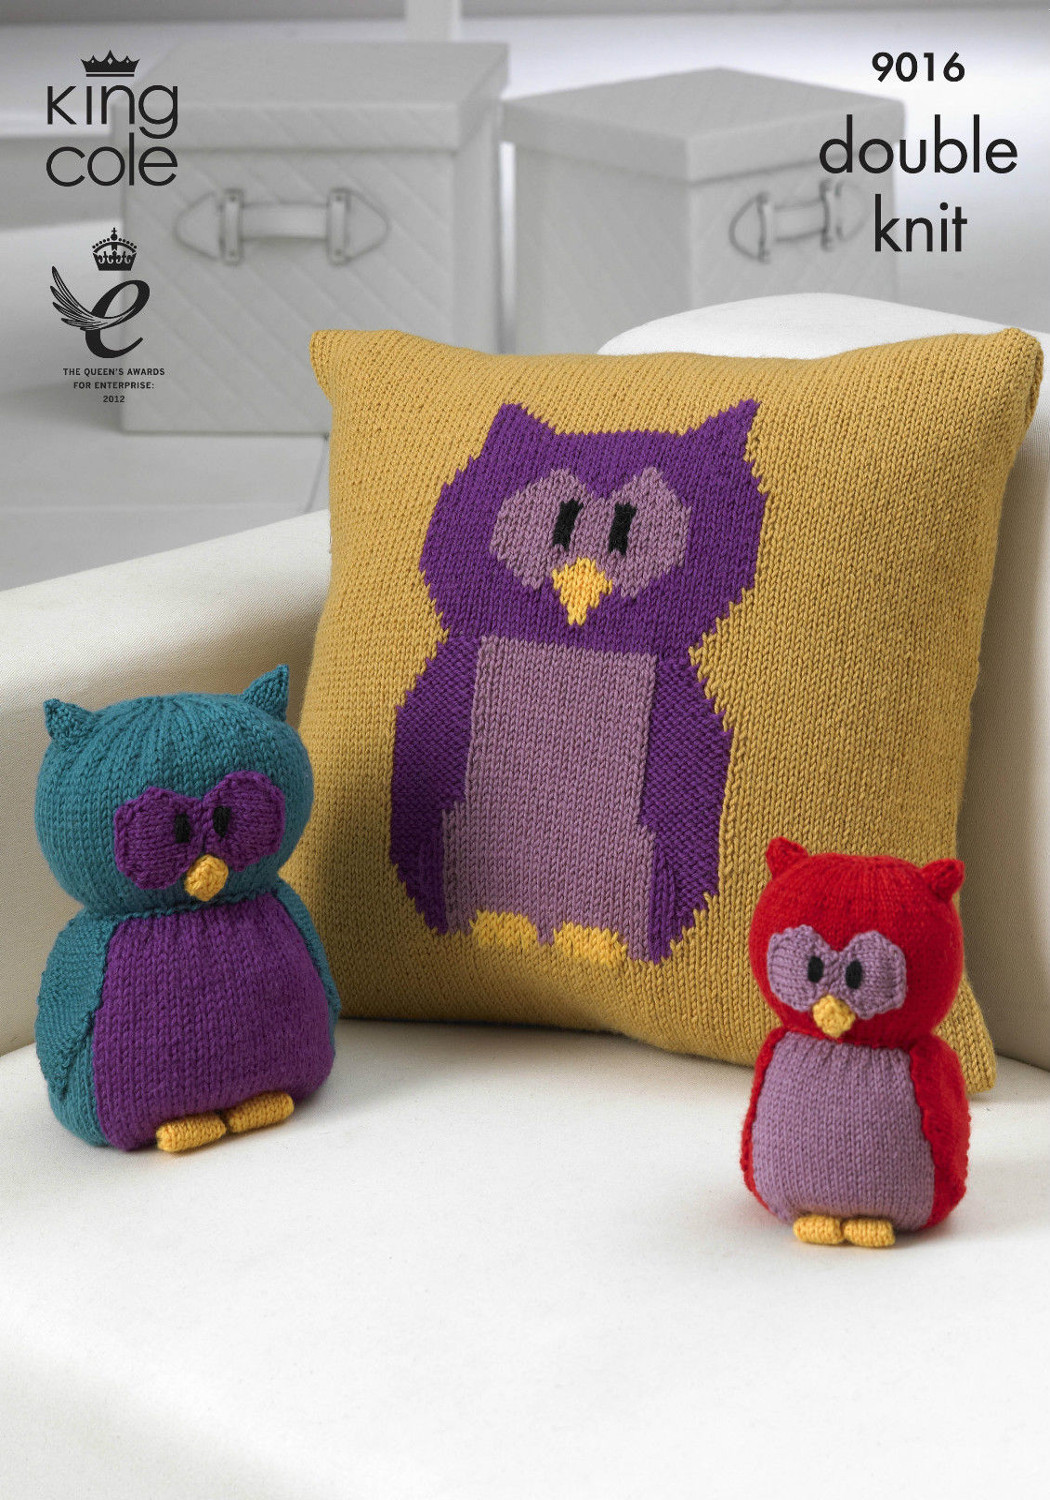 Owl Cushion Knitting Pattern : Owl Motif Cushion Toy & Doorstop Knitting Pattern King Cole Double Knit D...